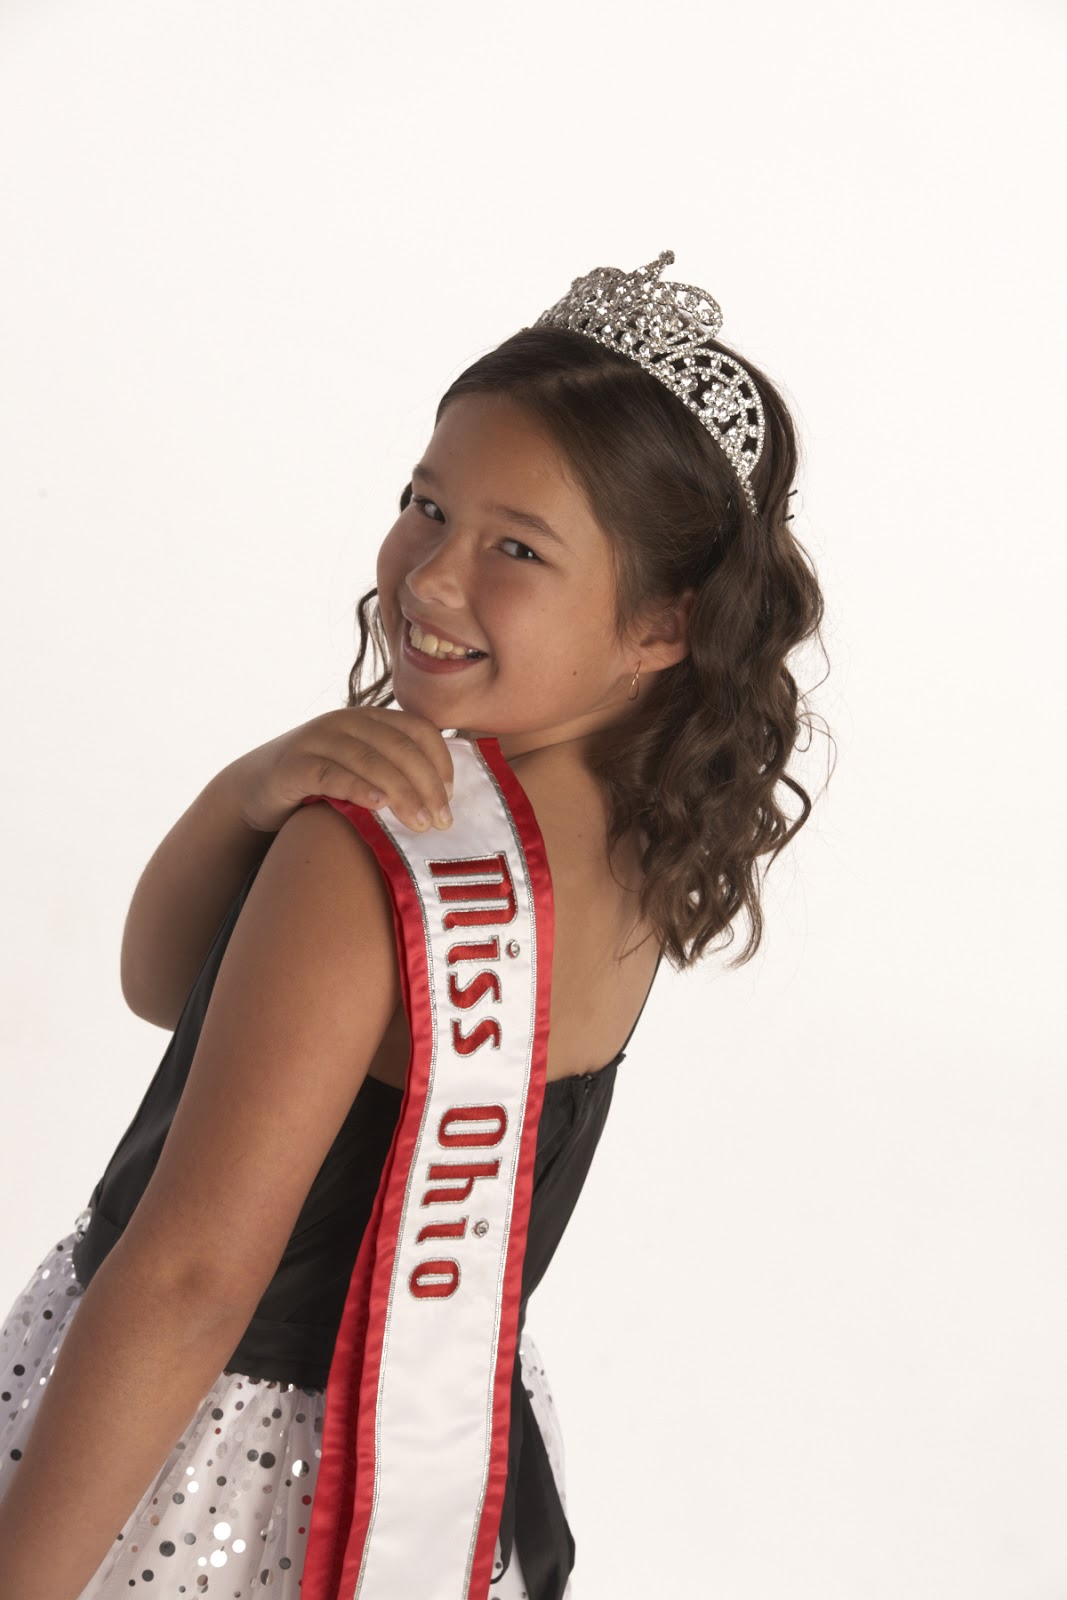 NATIONAL AMERICAN MISS...365 !!!: 6/23/13 - 6/nn preteen girls